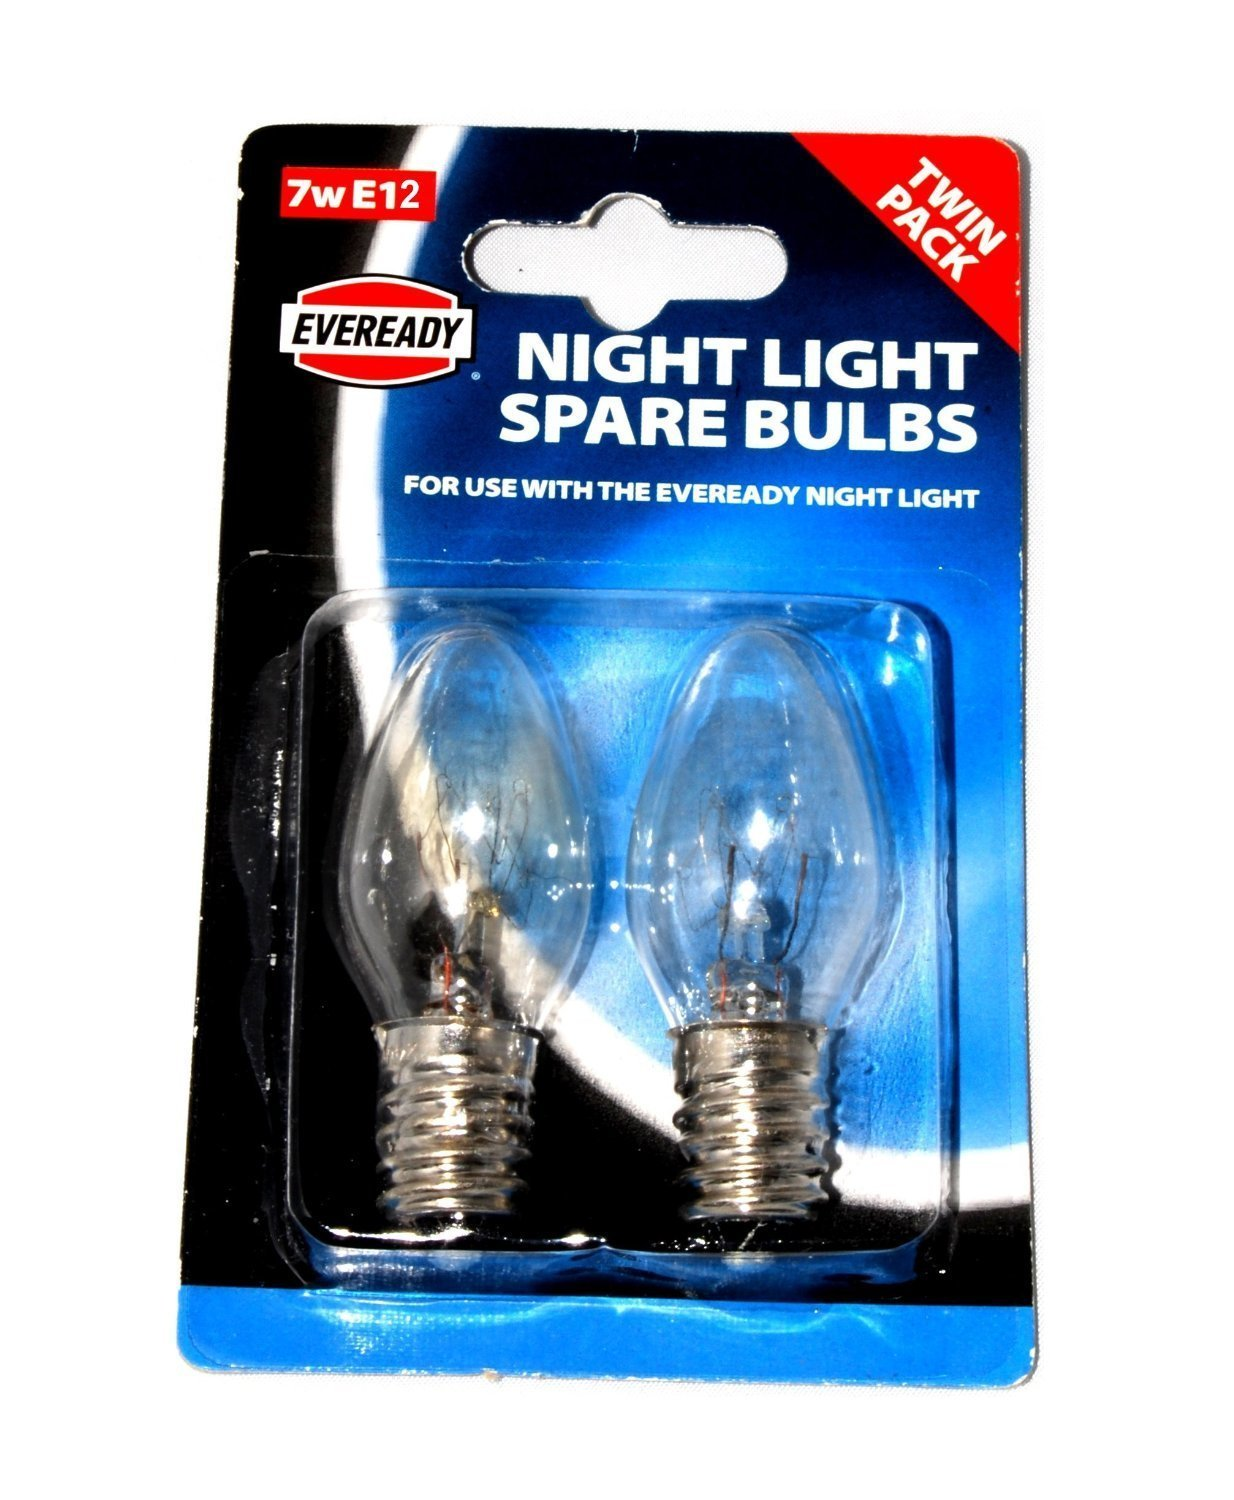 Twin Pack EVEREADY Night Light Spare Bulbs For use with The Eveready Night Light -*SEE NOTE 12mm Thread Diameter E12 7w 220-240v AC